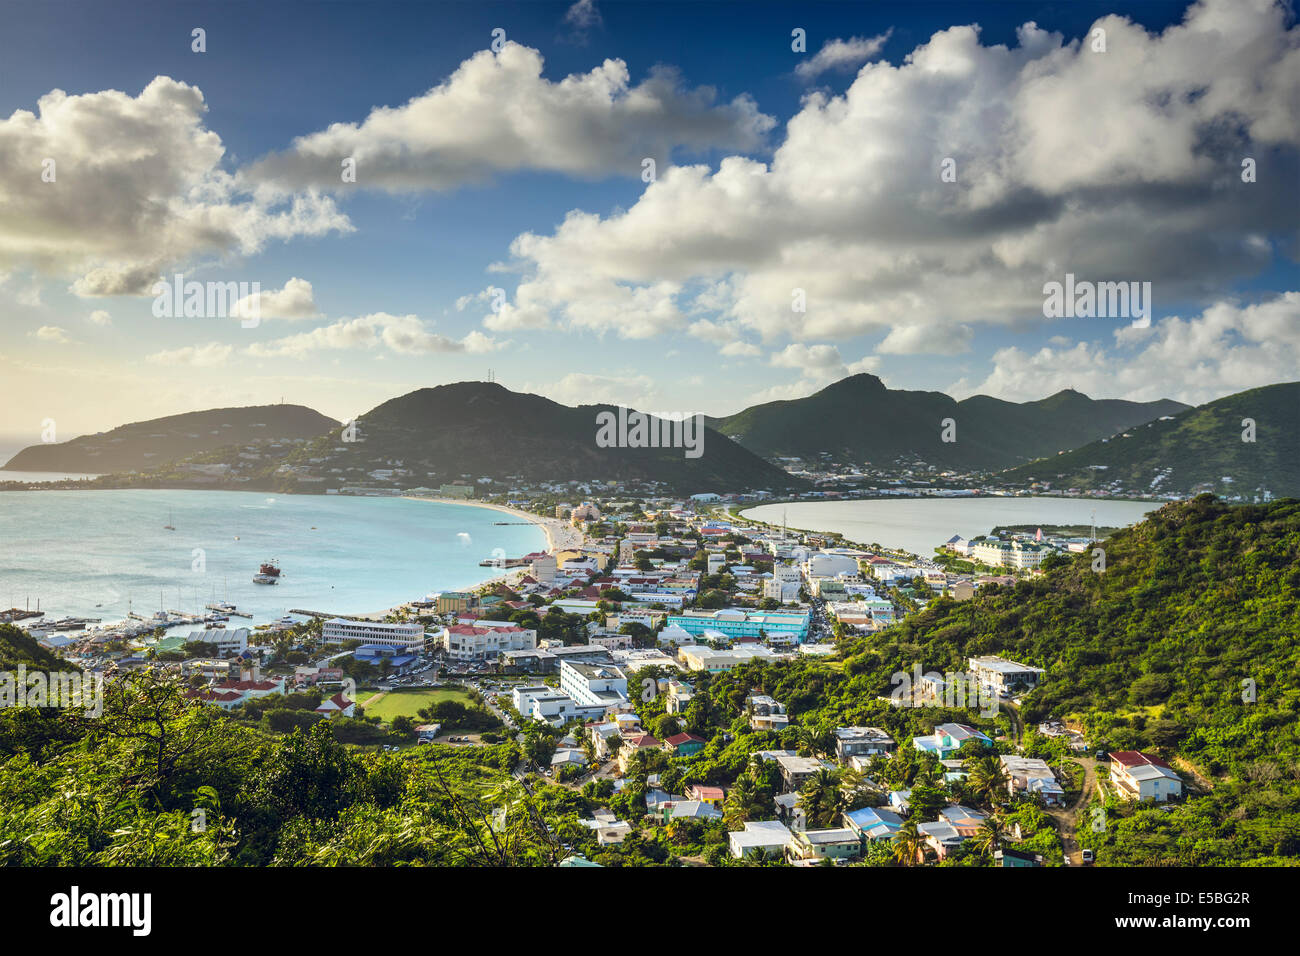 Philipsburg, Sint Maarten at the Great Salt Pond. - Stock Image